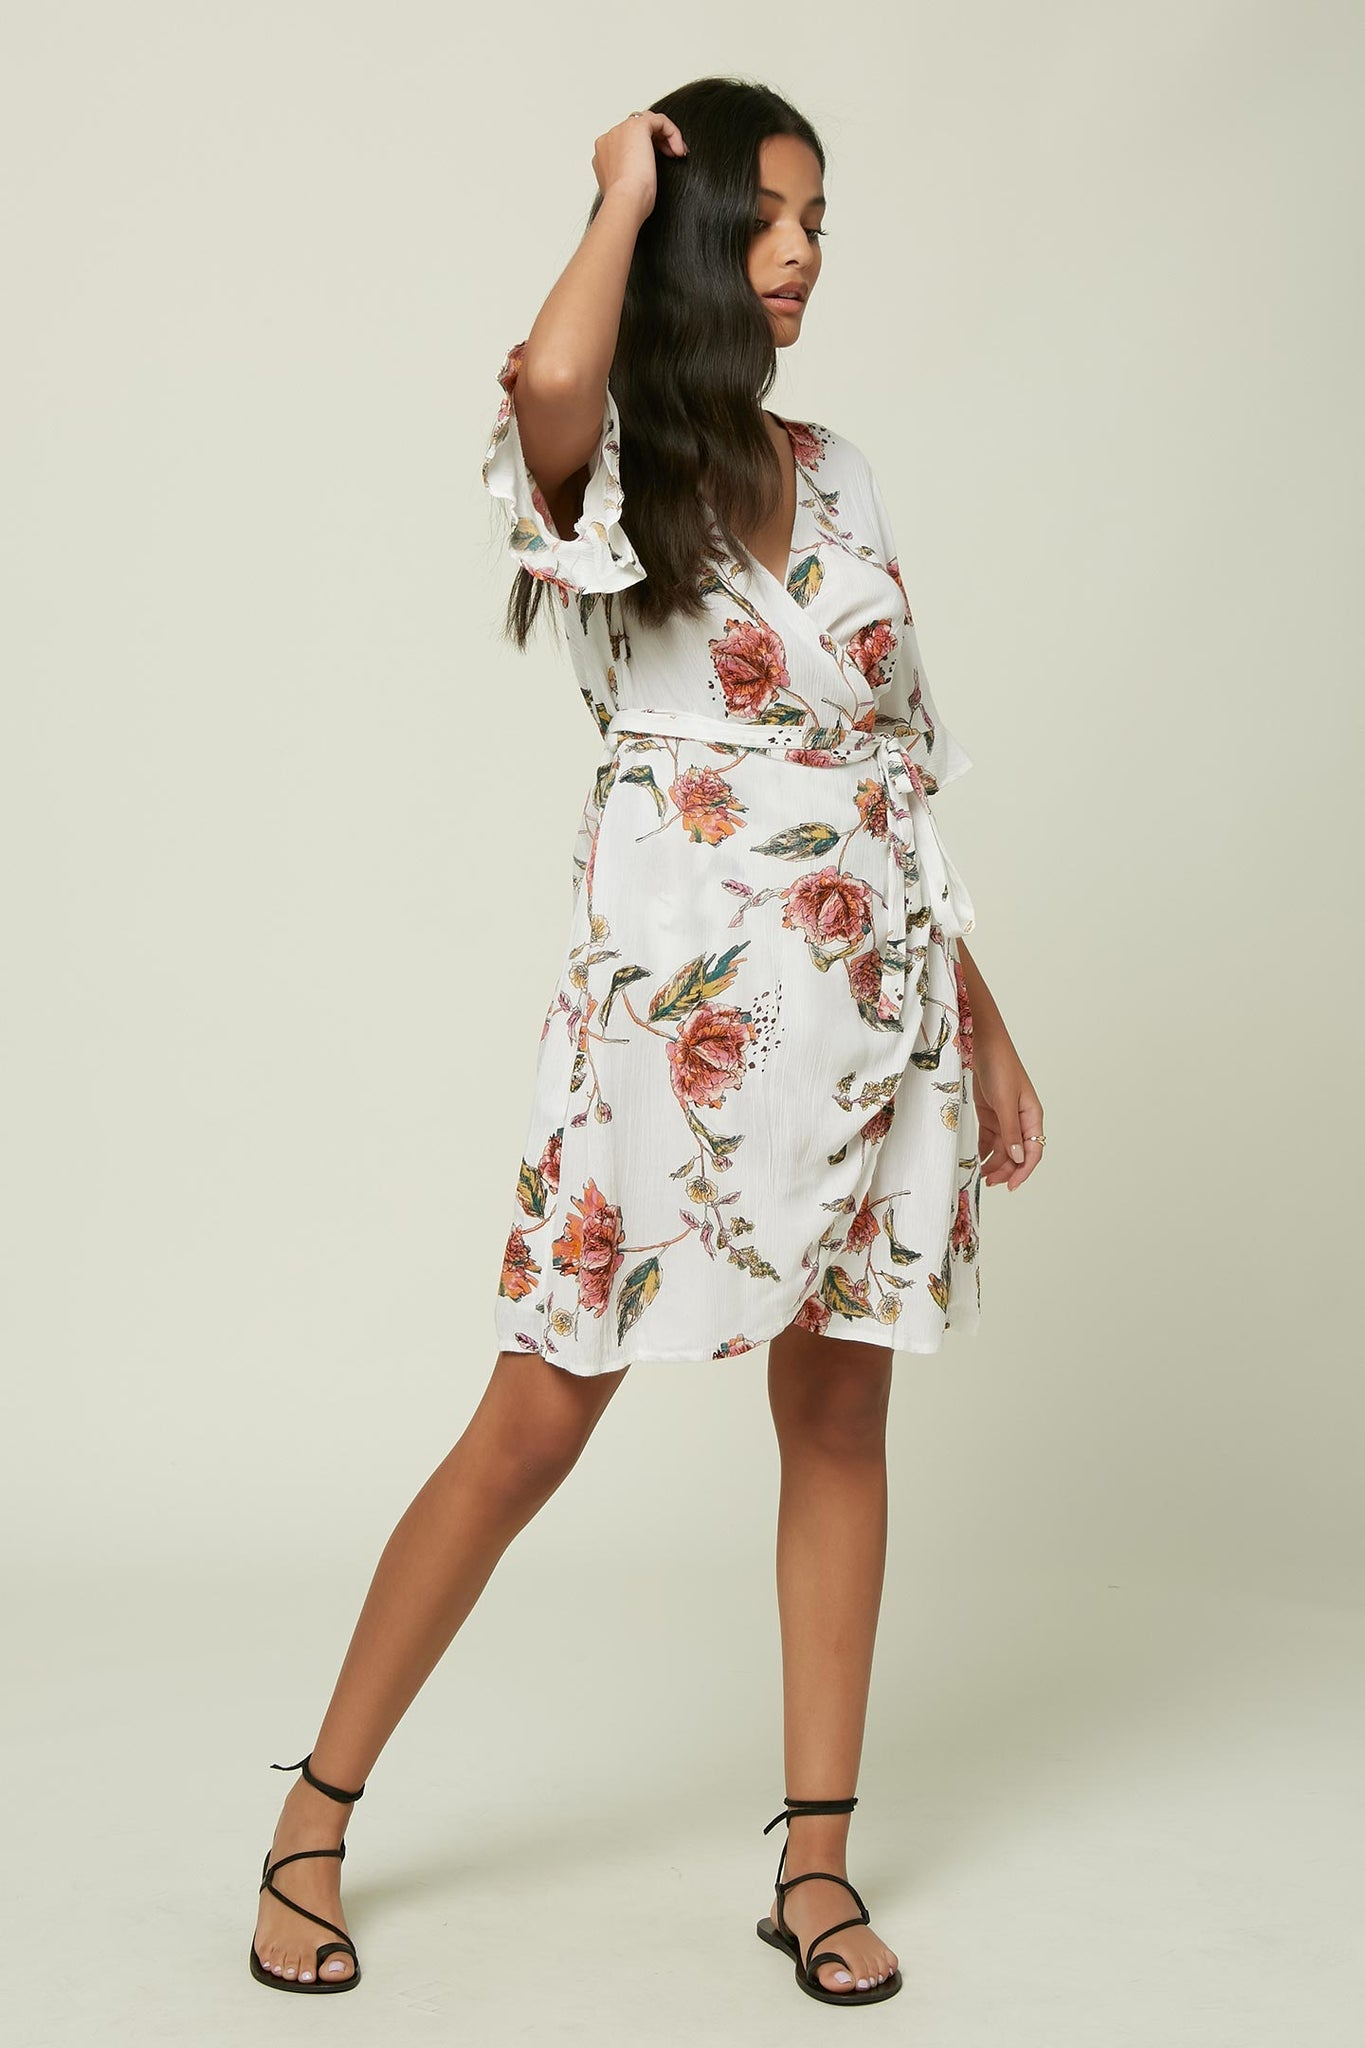 Molly Floral Dress - Winter White | O'Neill